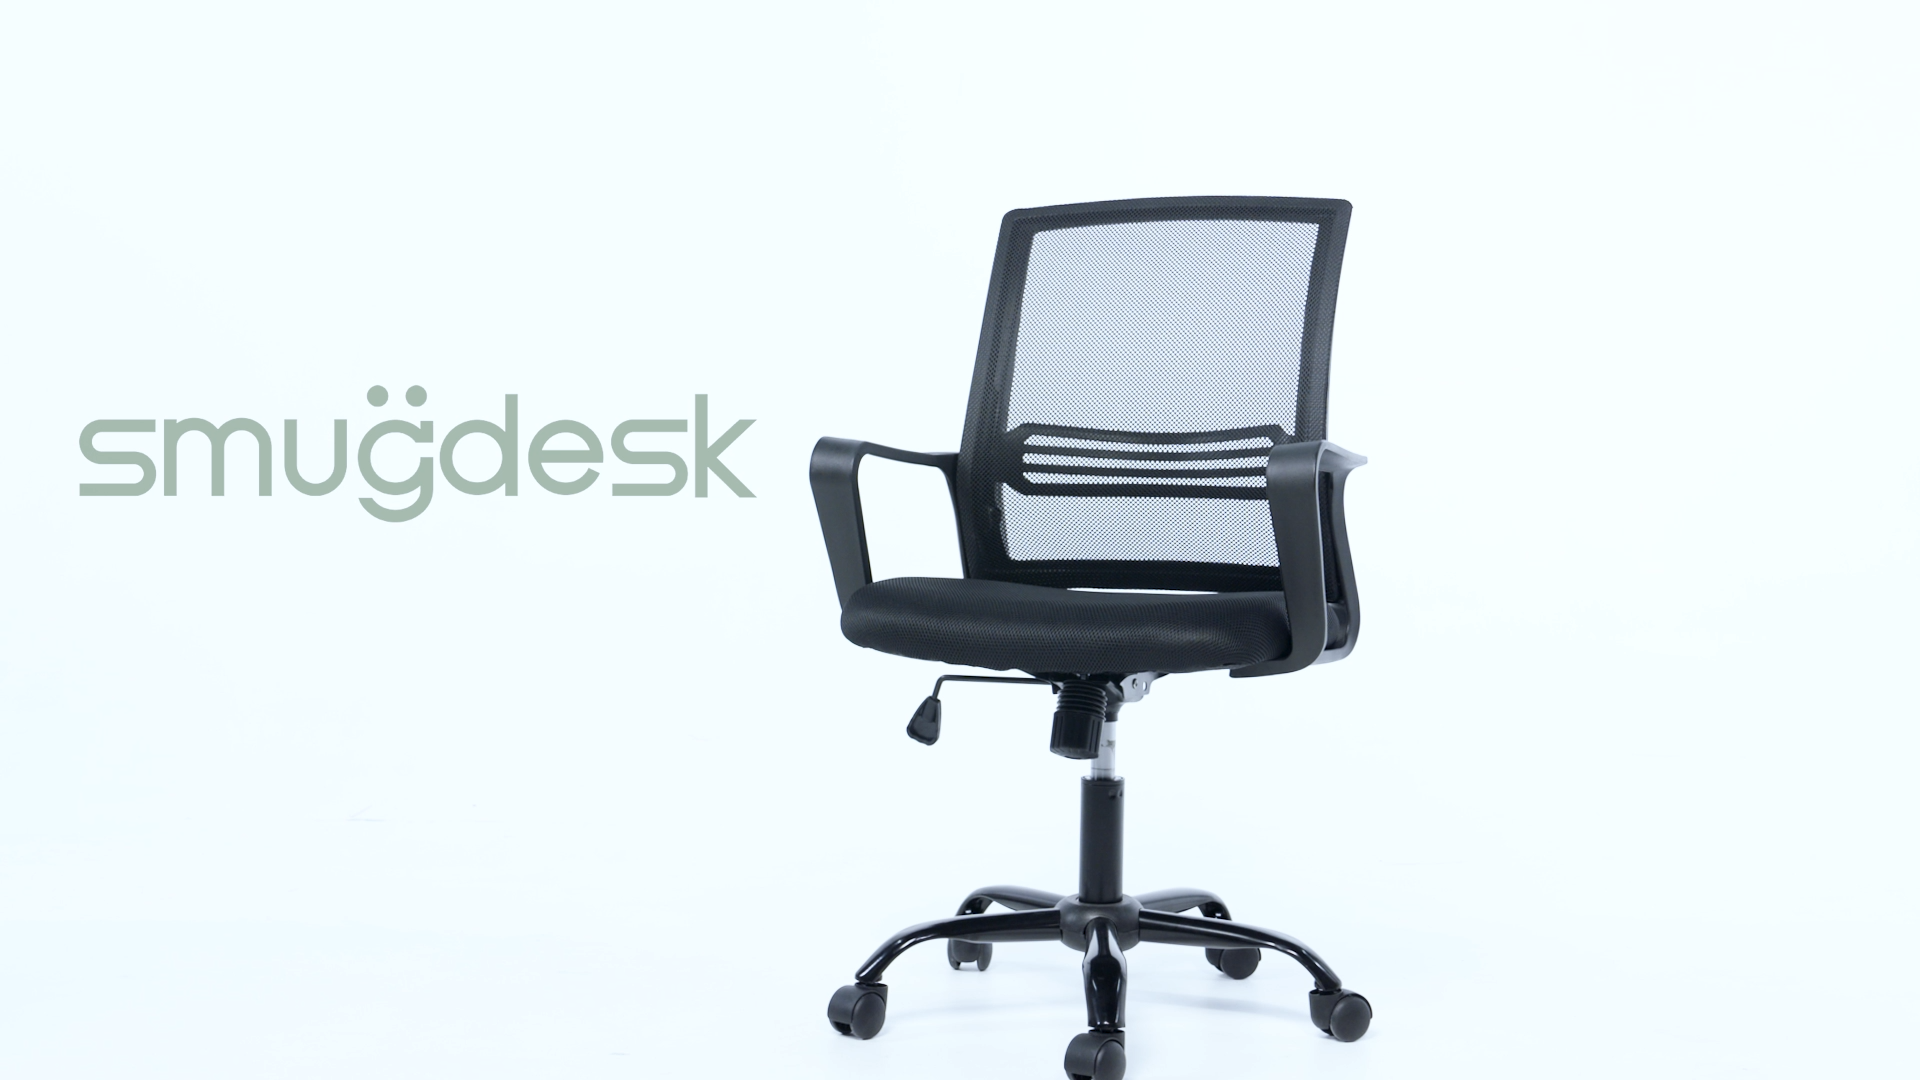 USA STOCK Office Chair, Mid Back Mesh Office Computer Swivel Desk Task Chair, Ergonomic Executive Chair with Armrests